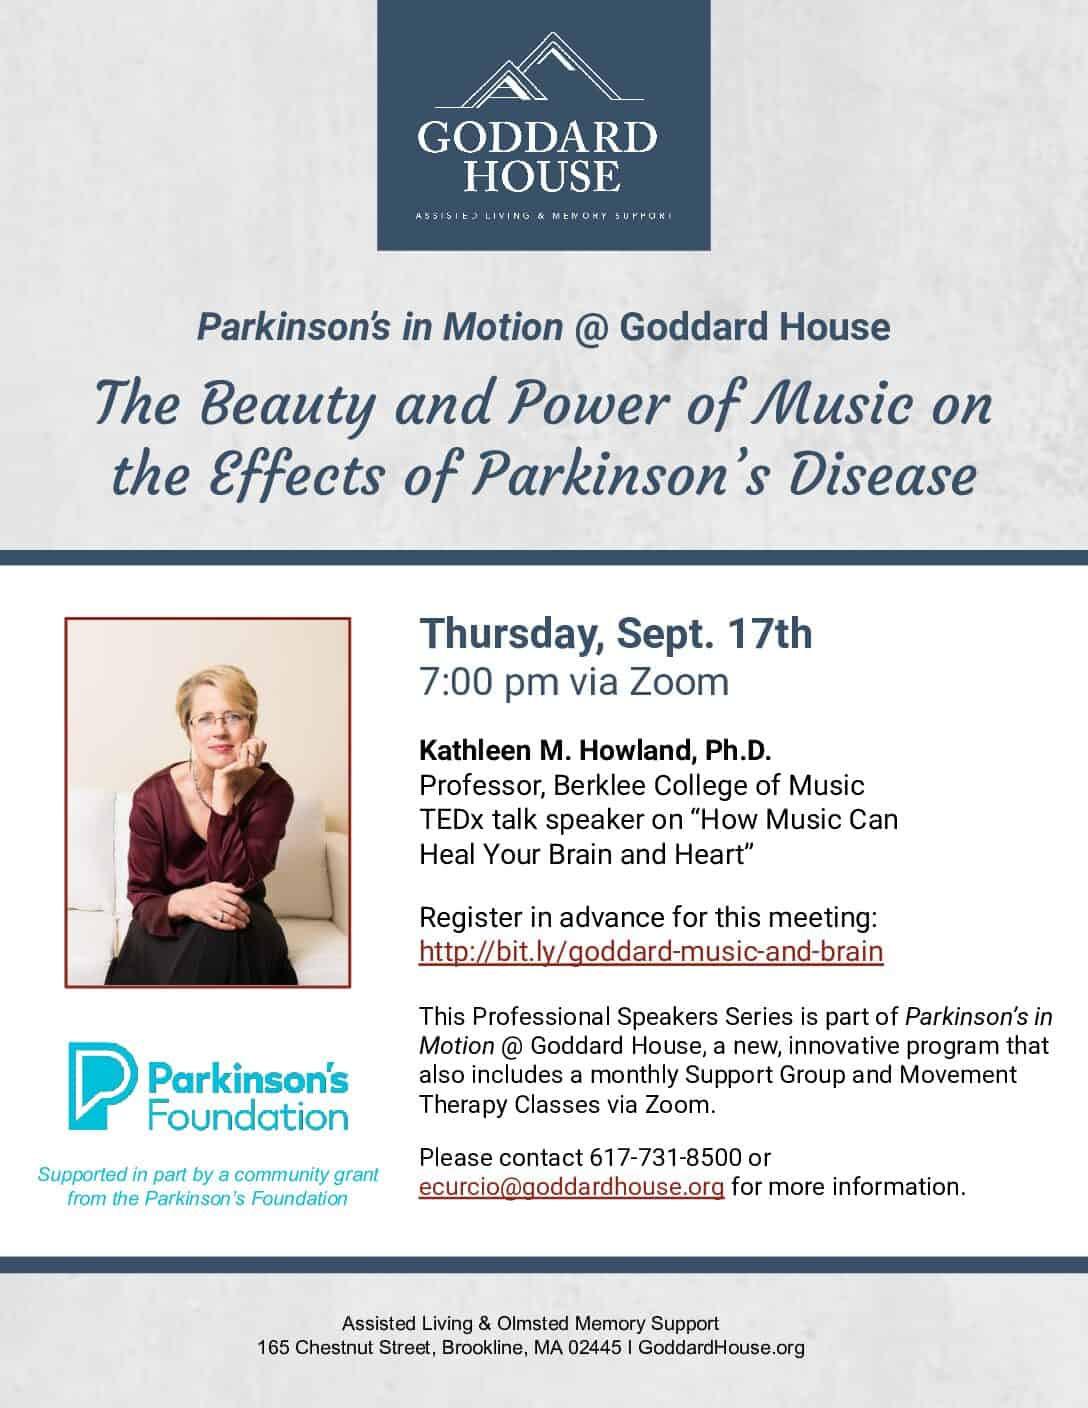 The Beauty and Power of Music on the Effects of Parkinson's